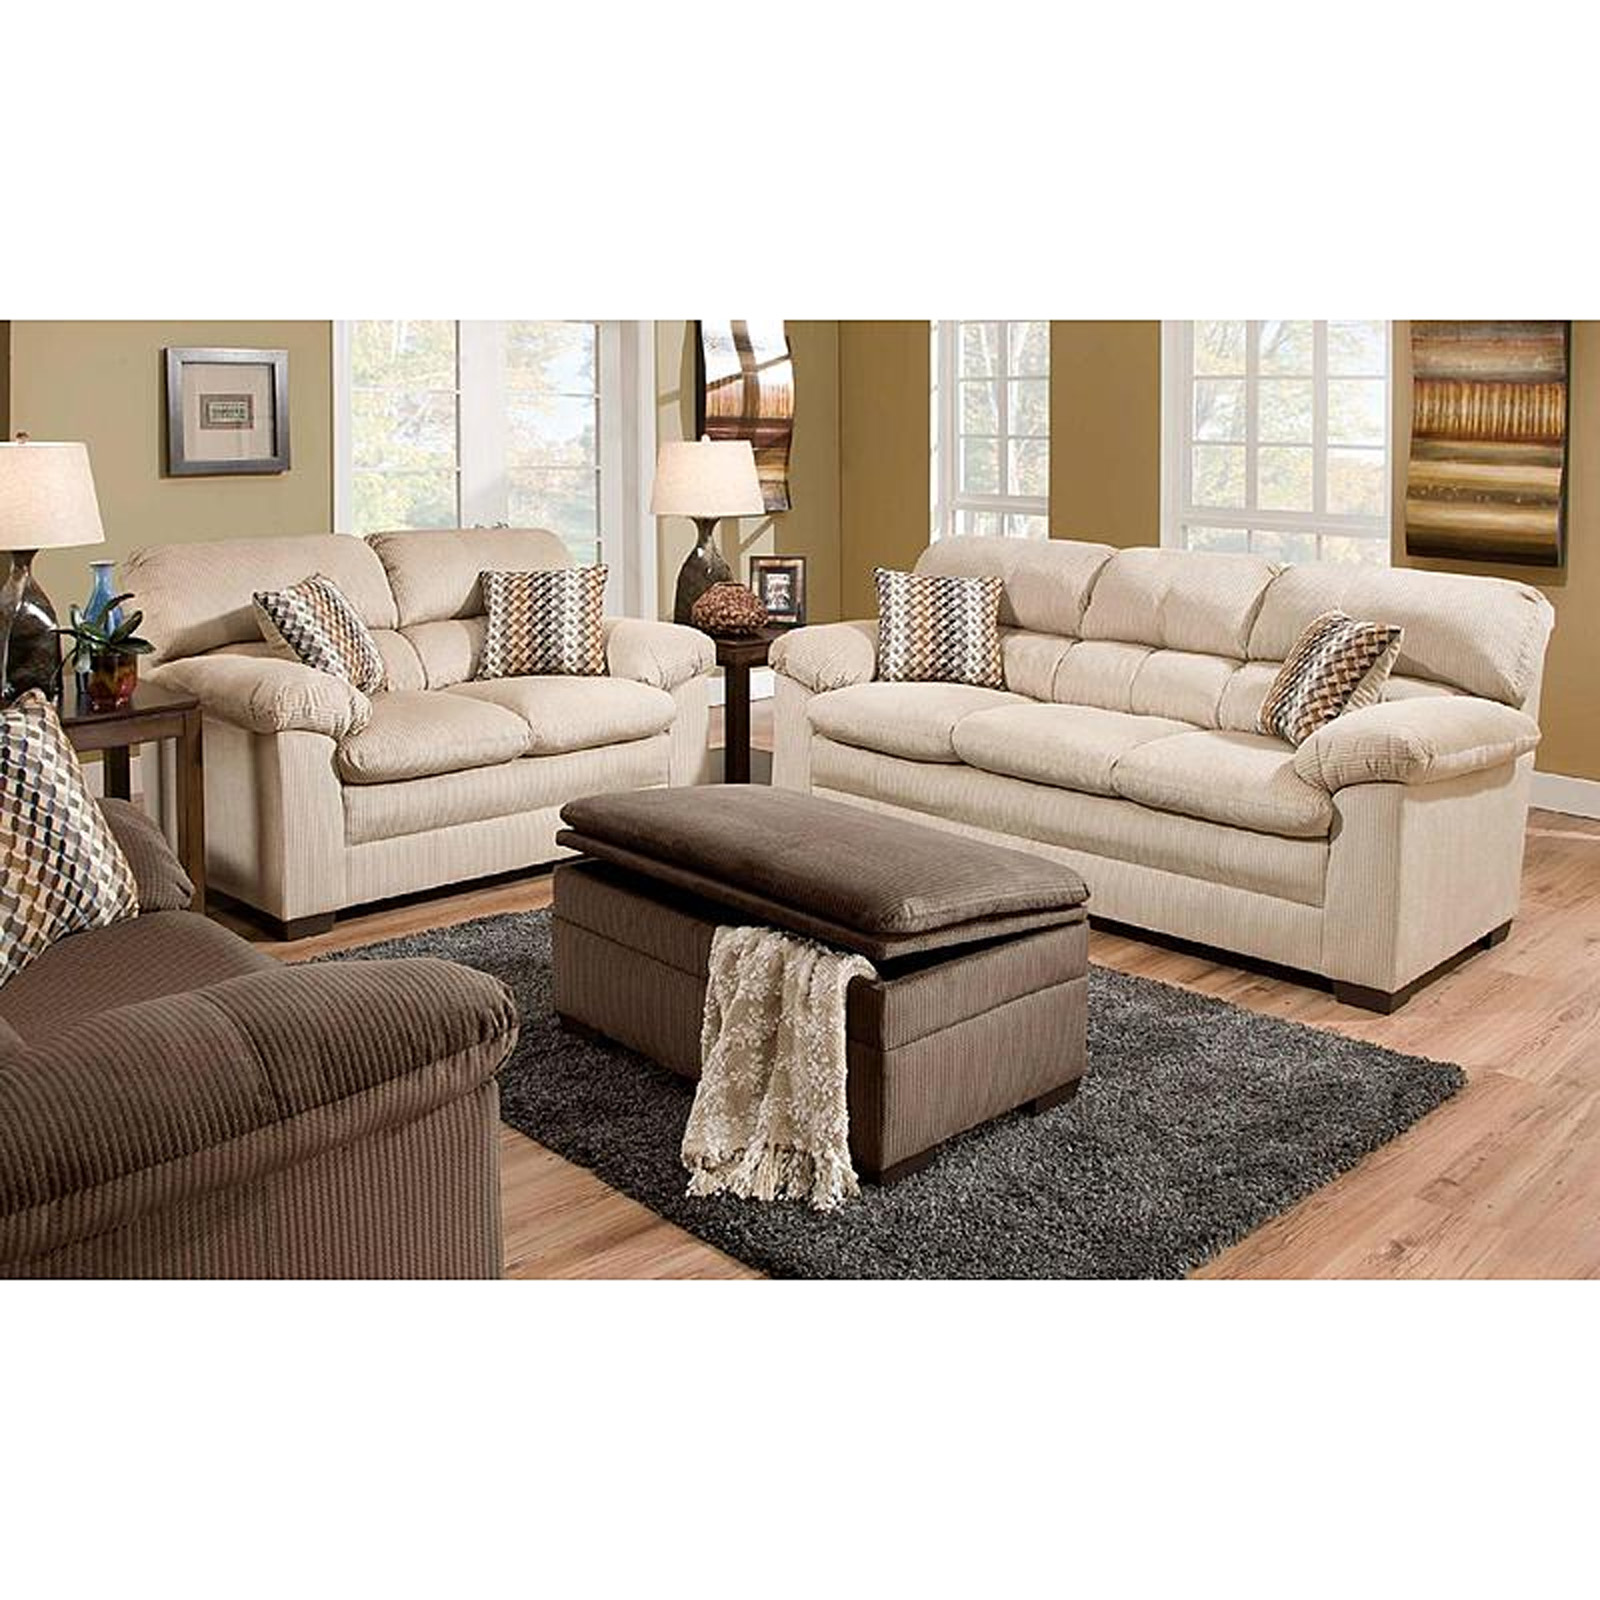 sofa mart lakewood professional cleaners belfast simmons upholstery 3685pk ottoman doe sears